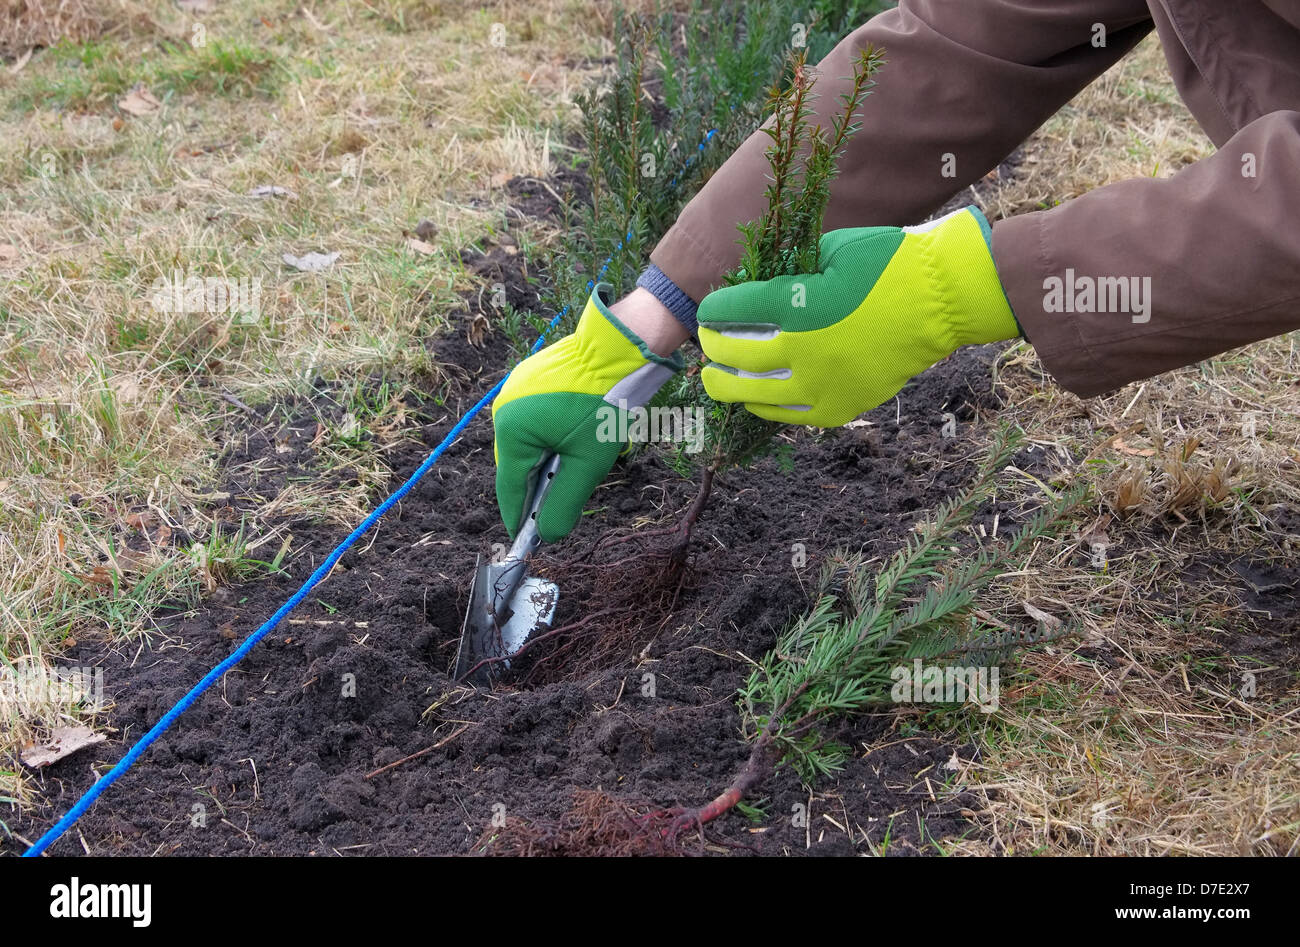 Hecke pflanzen Eibe - planting a taxus hedge 01 - Stock Image